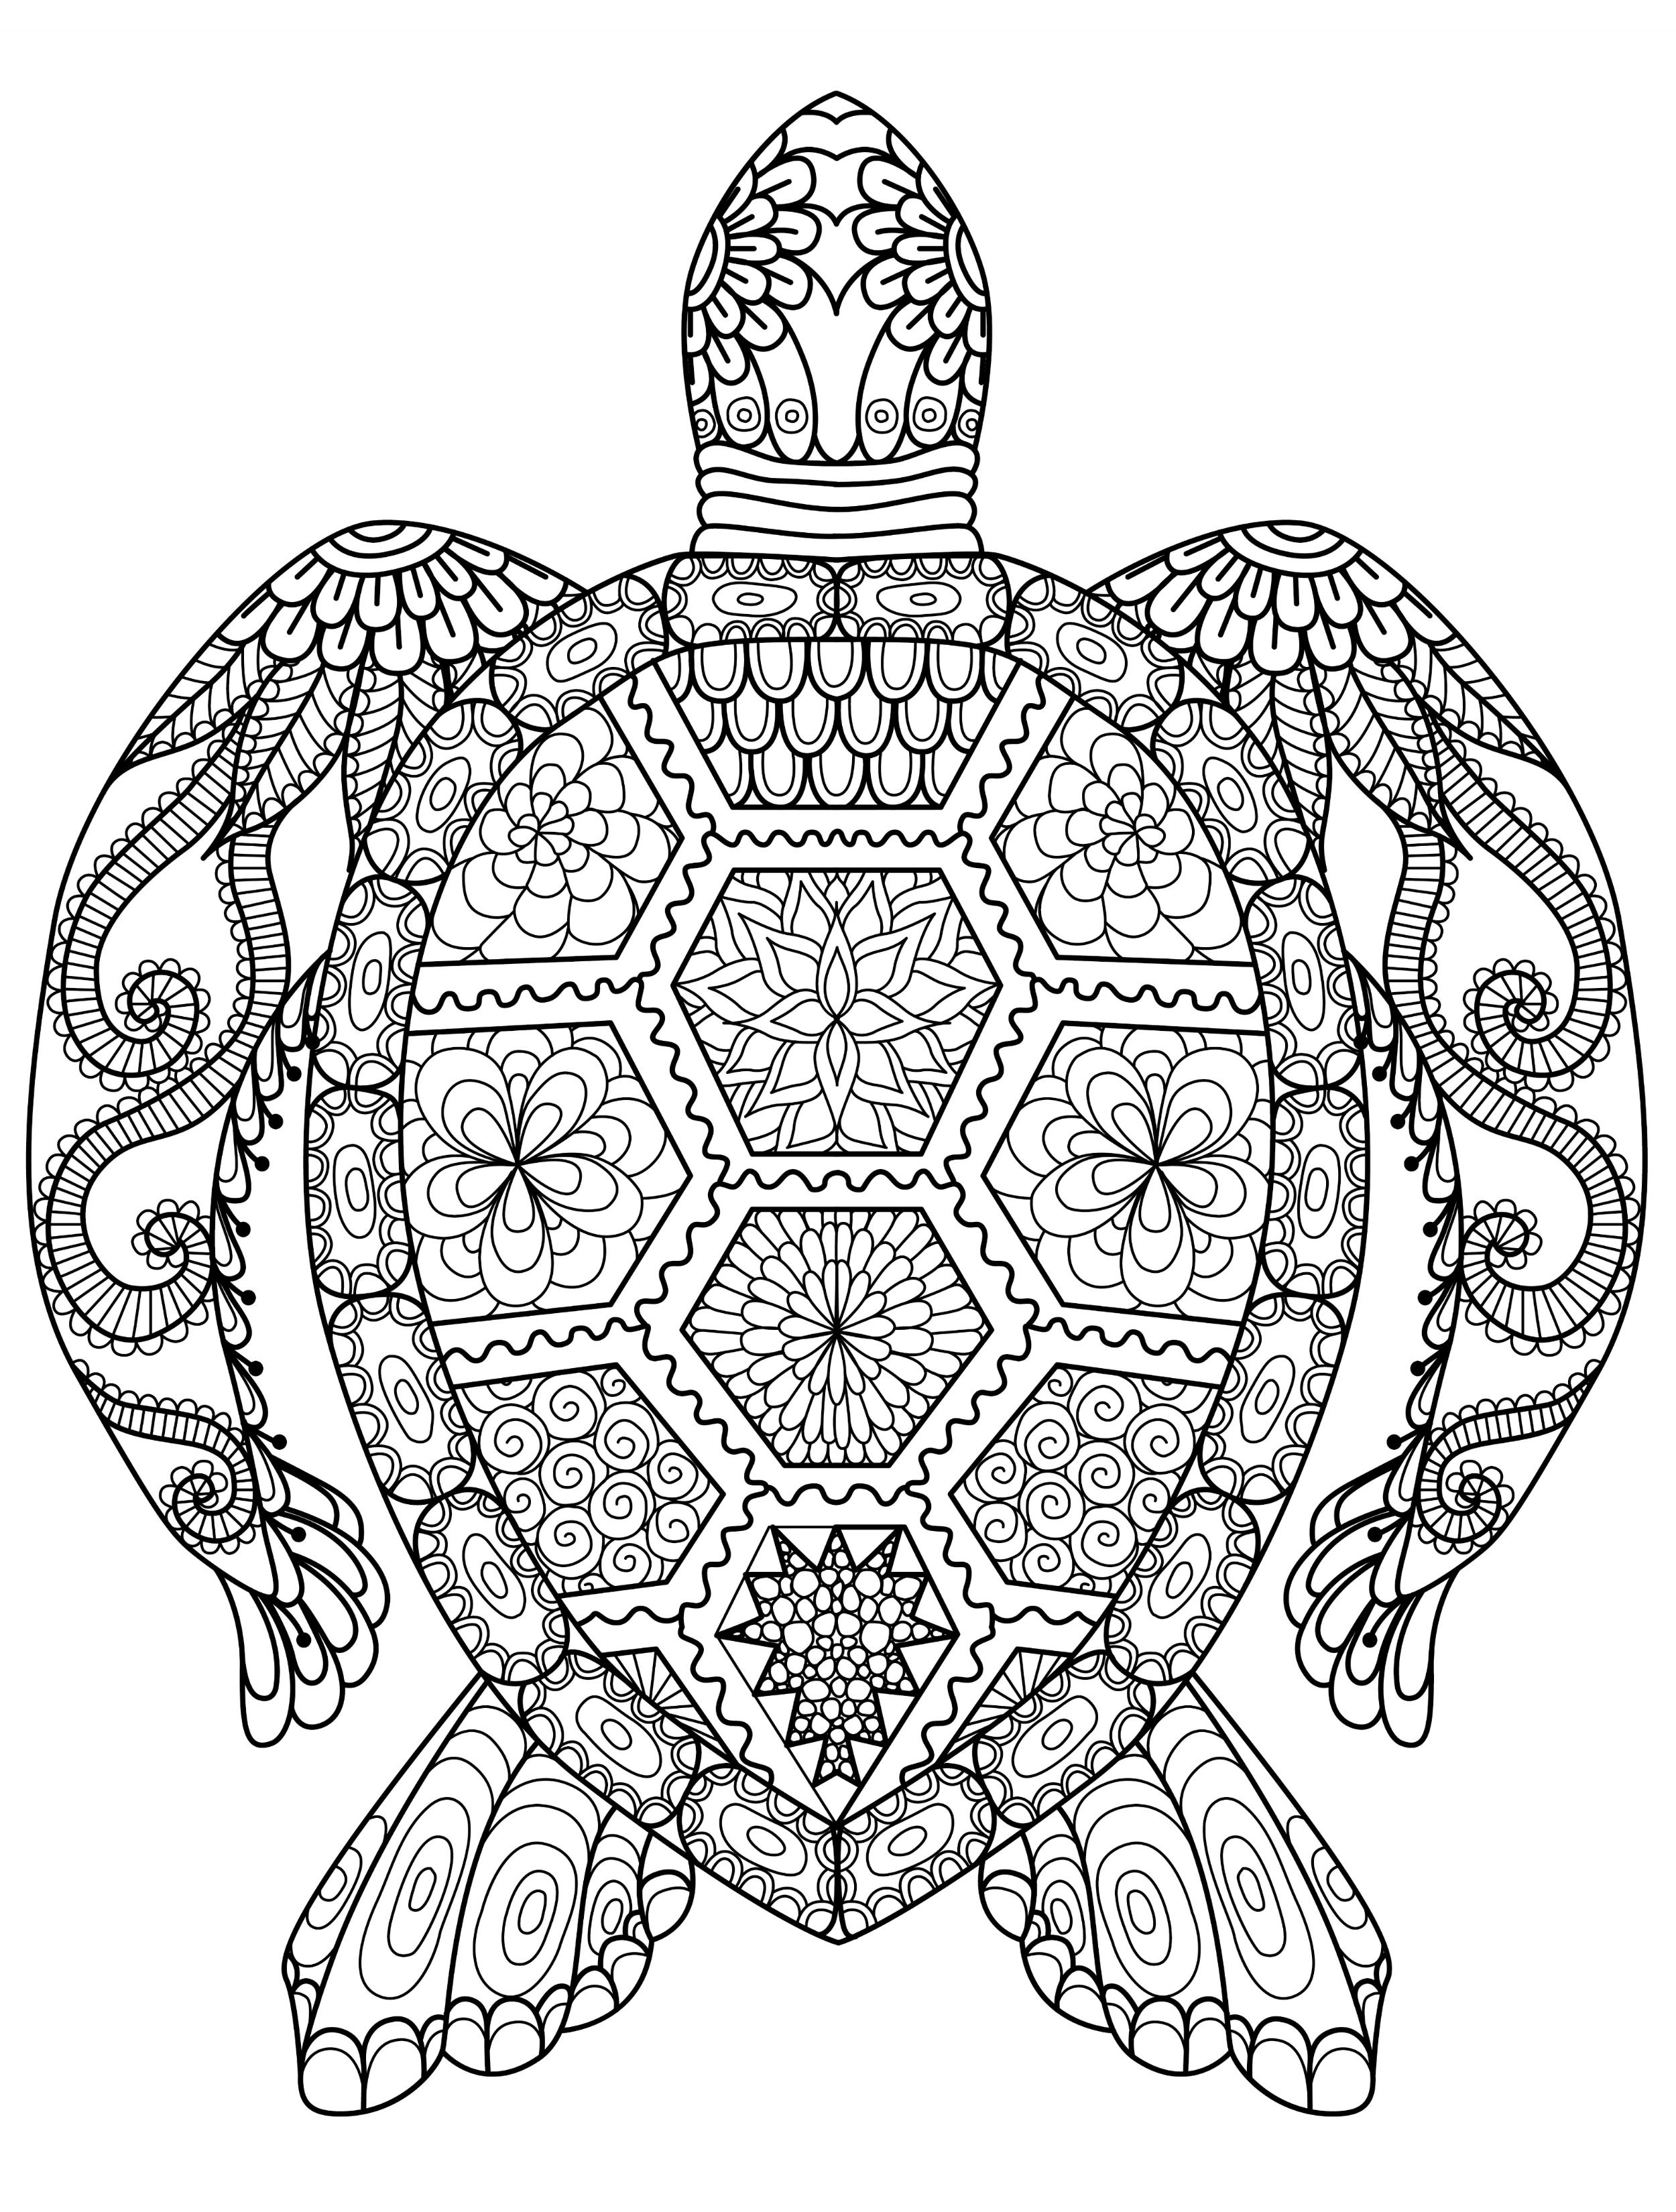 Sea Turtle Coloring Pages For Adults